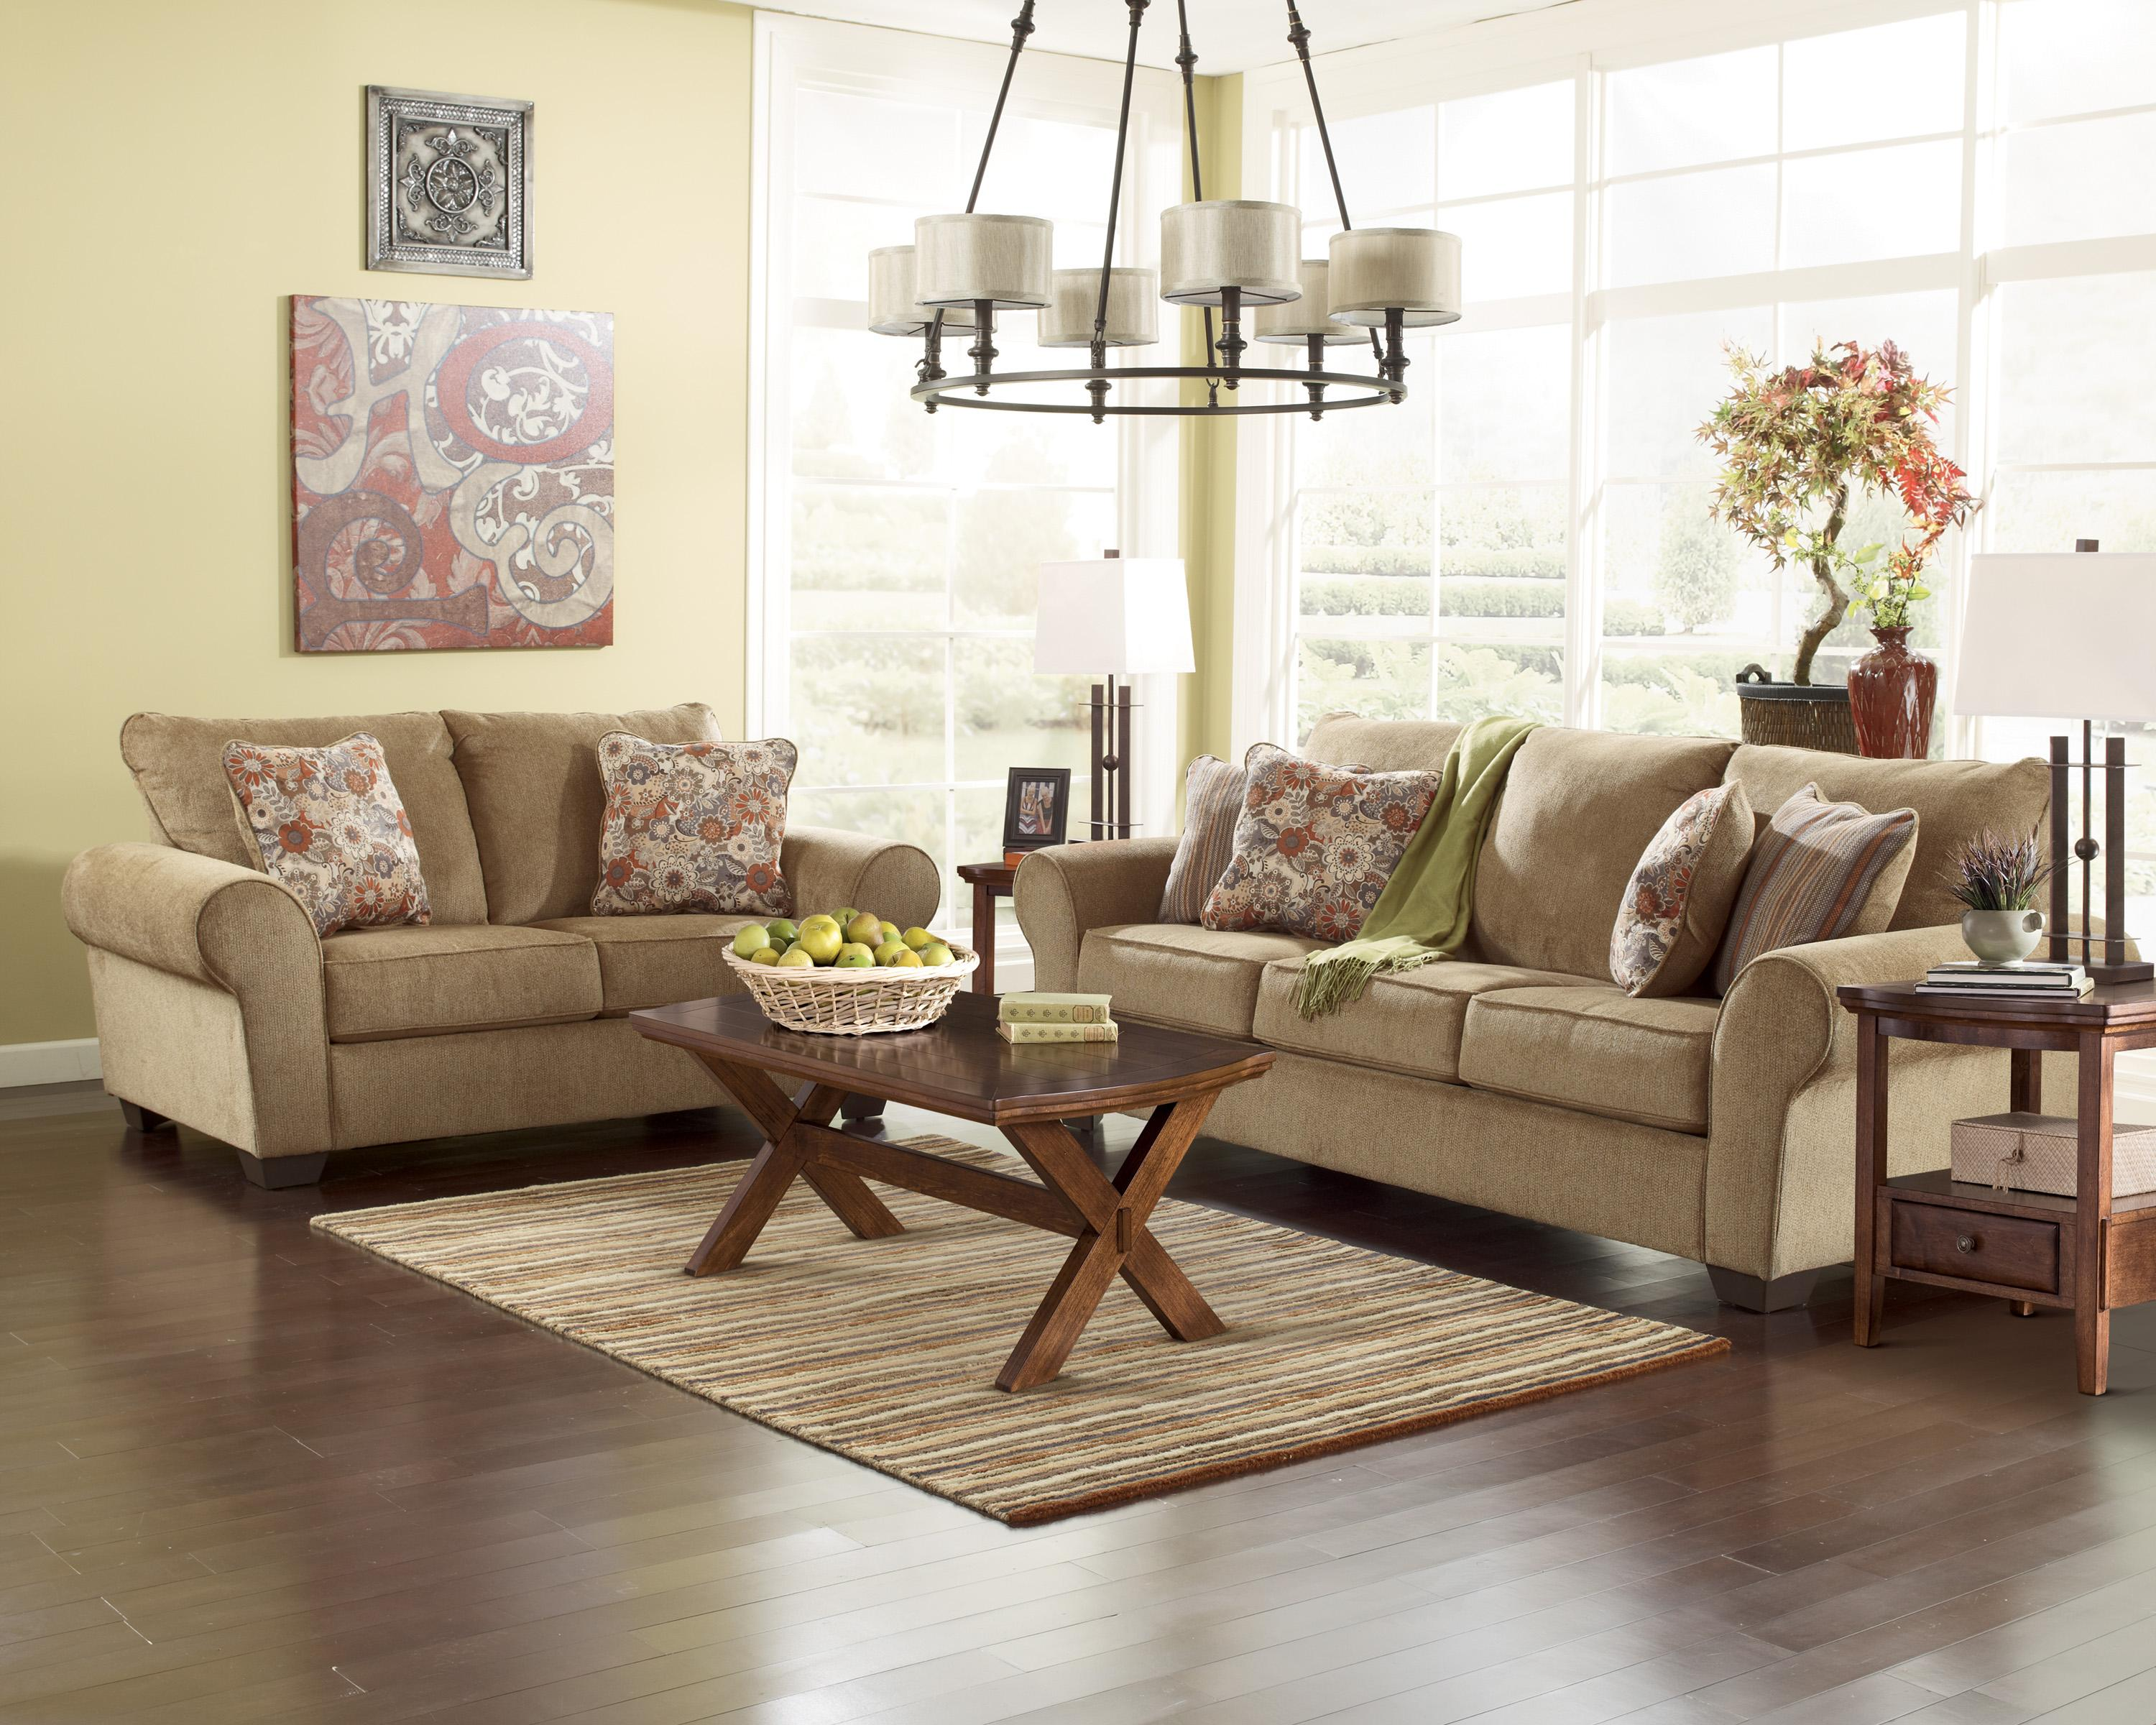 Ashley Furniture Galand Umber 1170038 Sofa With Rolled Arms Gill Brothers Furniture Sofas